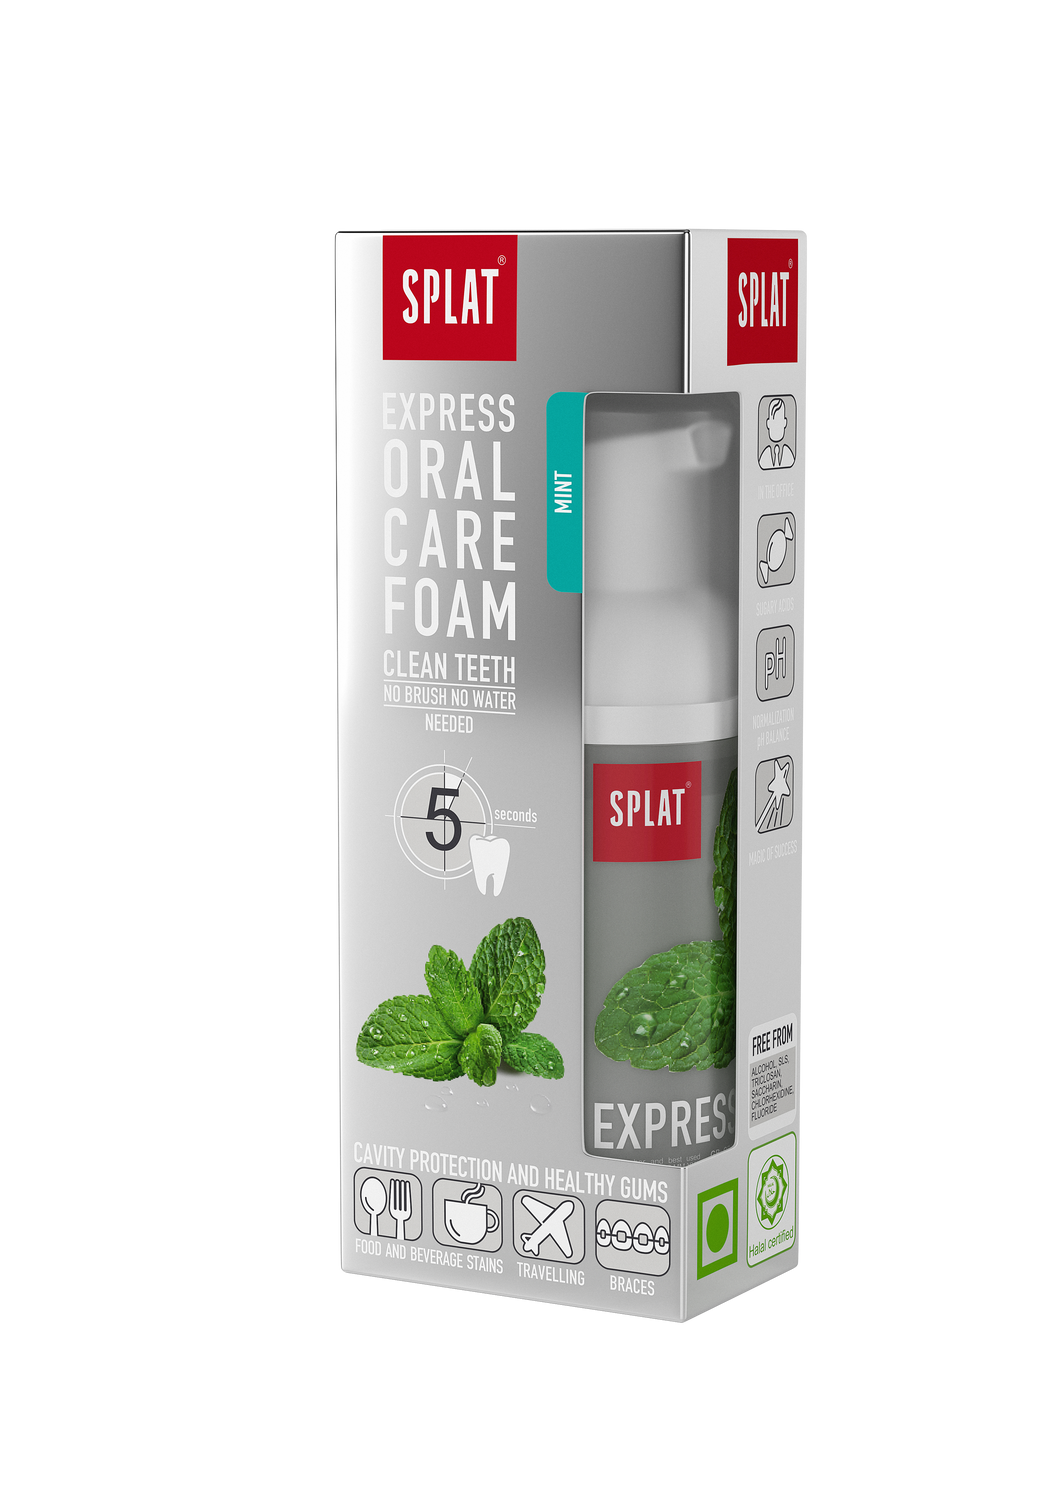 Mint Foam mouthwash - No water required